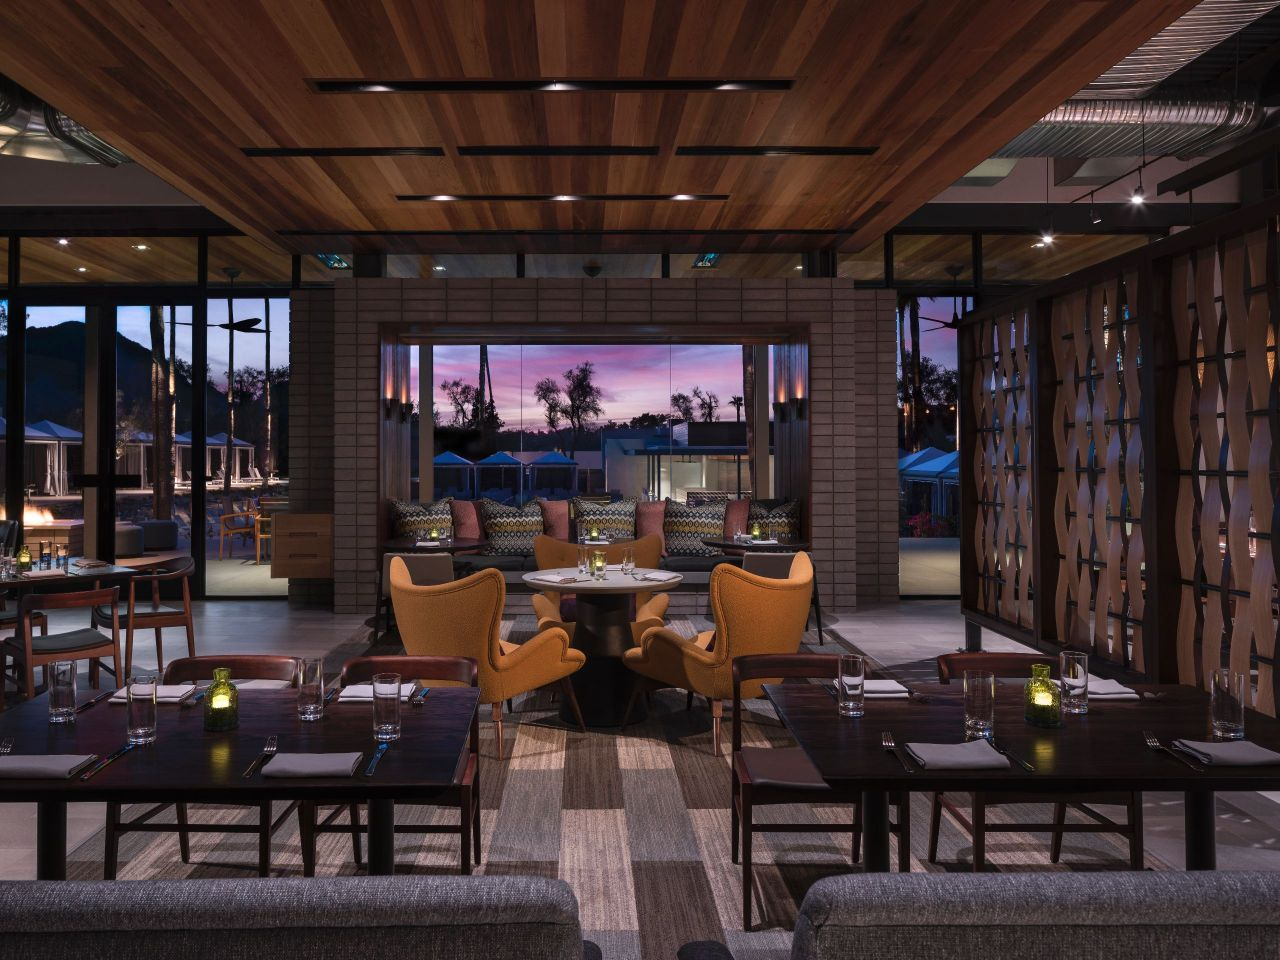 Weft Warp Sunset Dining at Andaz Scottsdale, AZ Resort & Bungalows